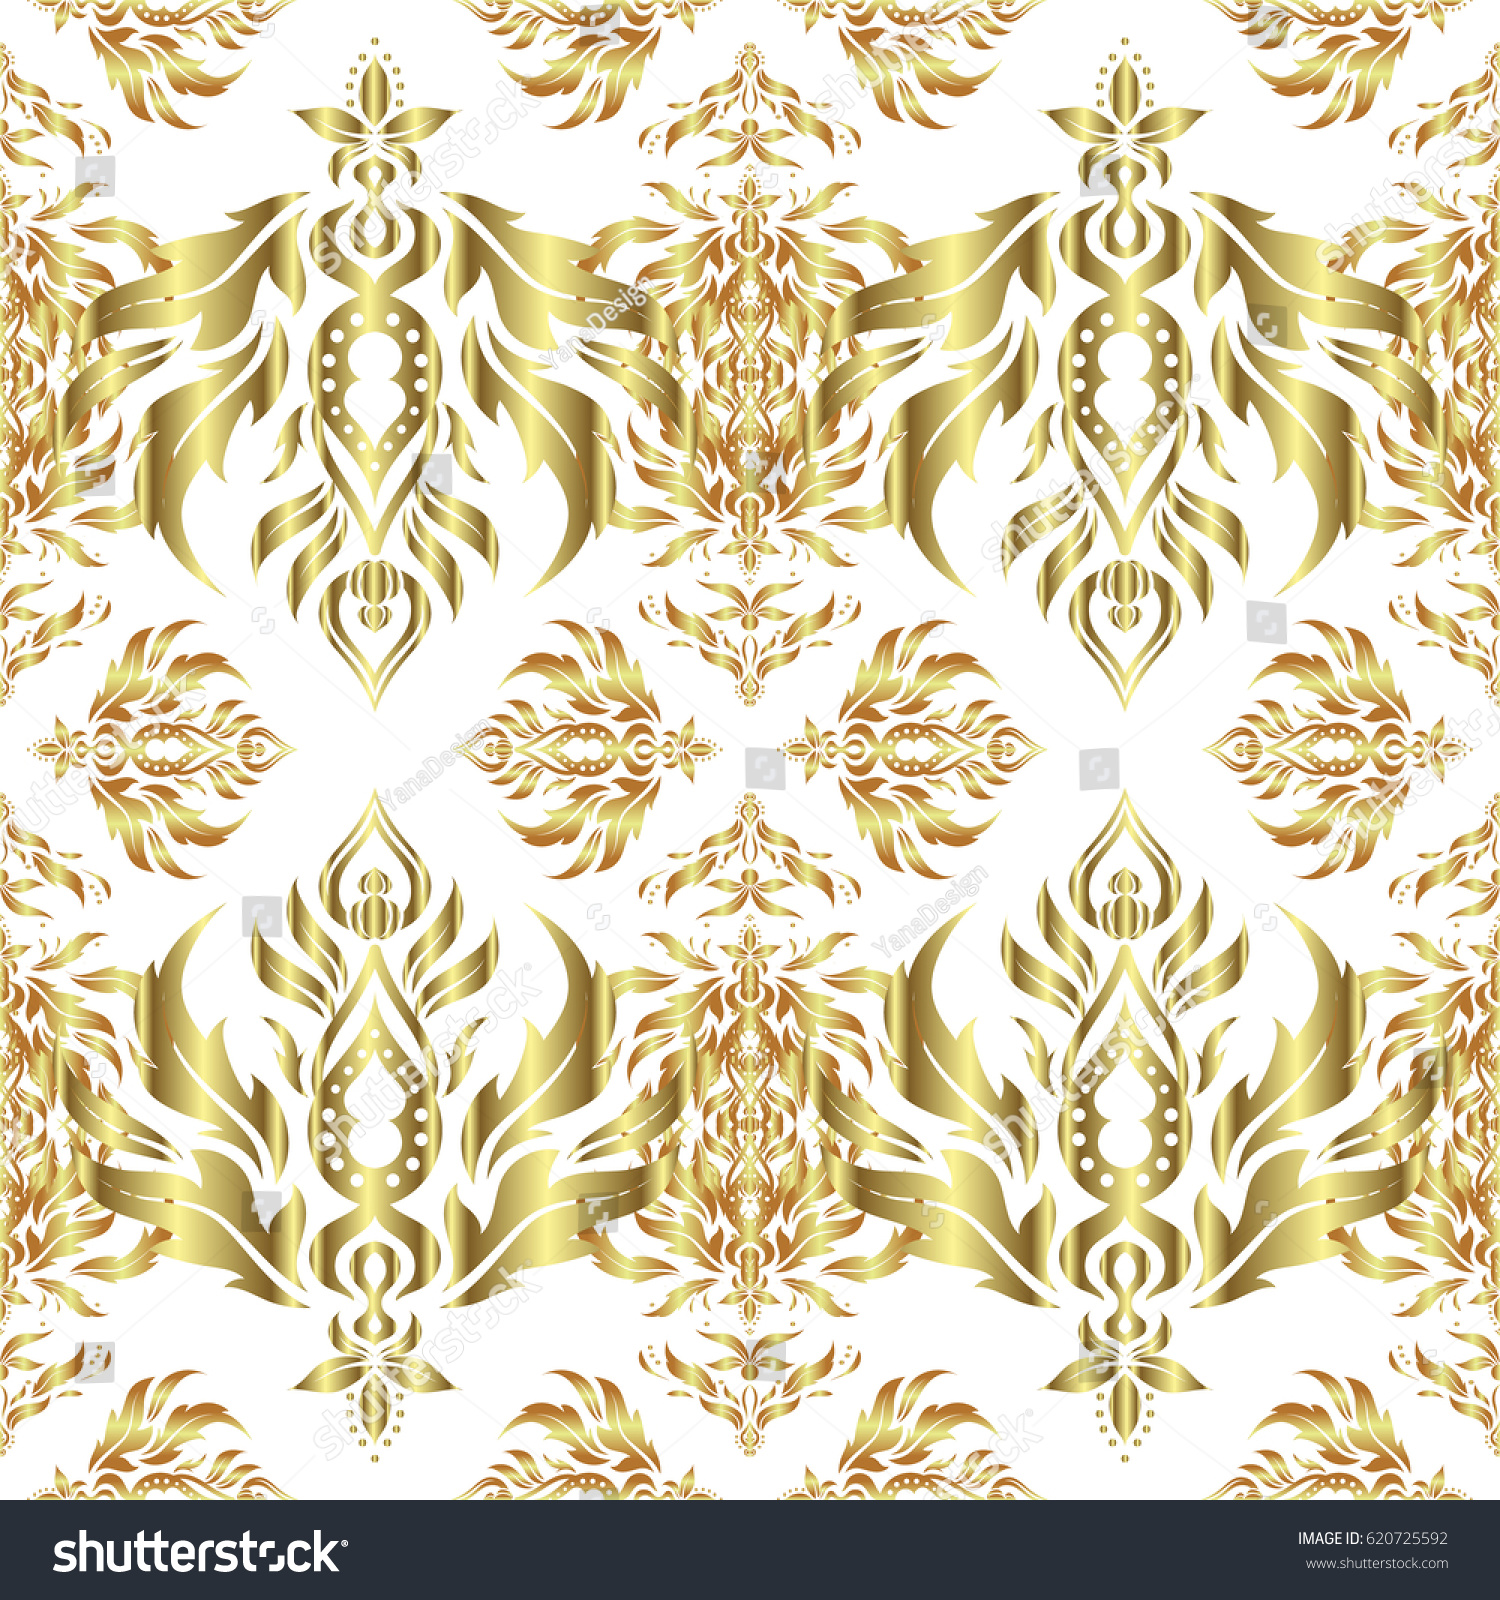 Gold star ornaments - Vector Gold Star Pattern Star Decorations Golden Grid On A White Background Luxury